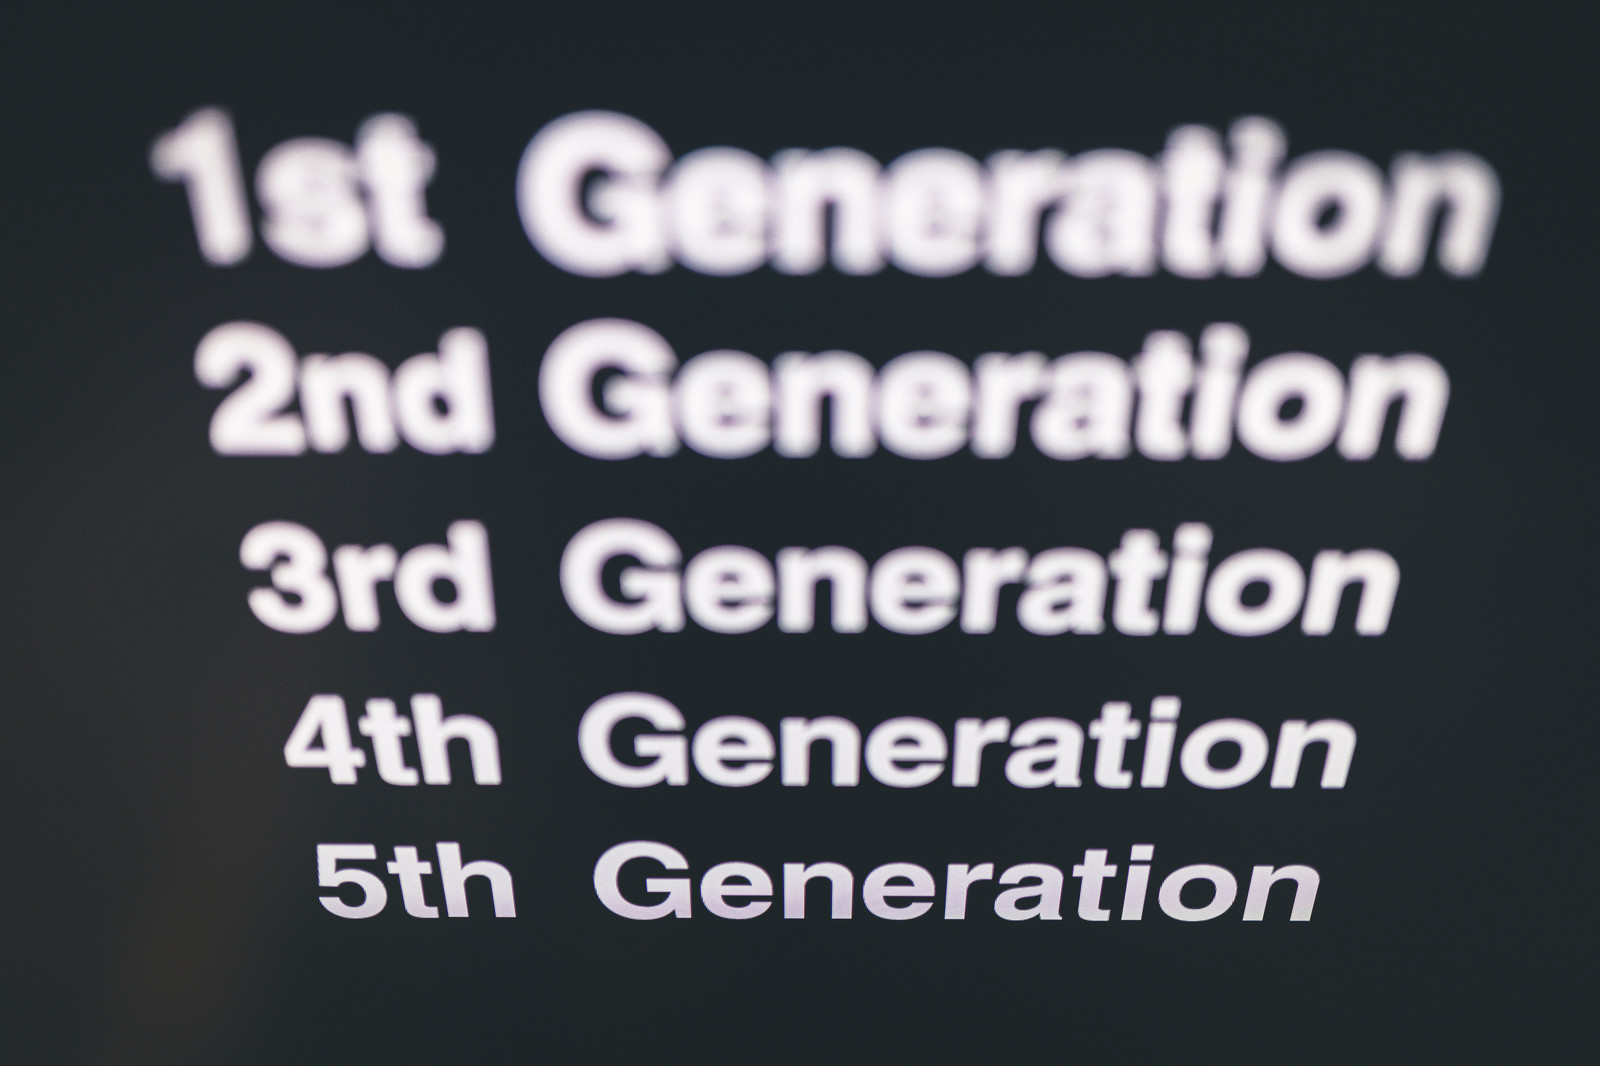 「1st Generation ~ 5th Generation」の写真